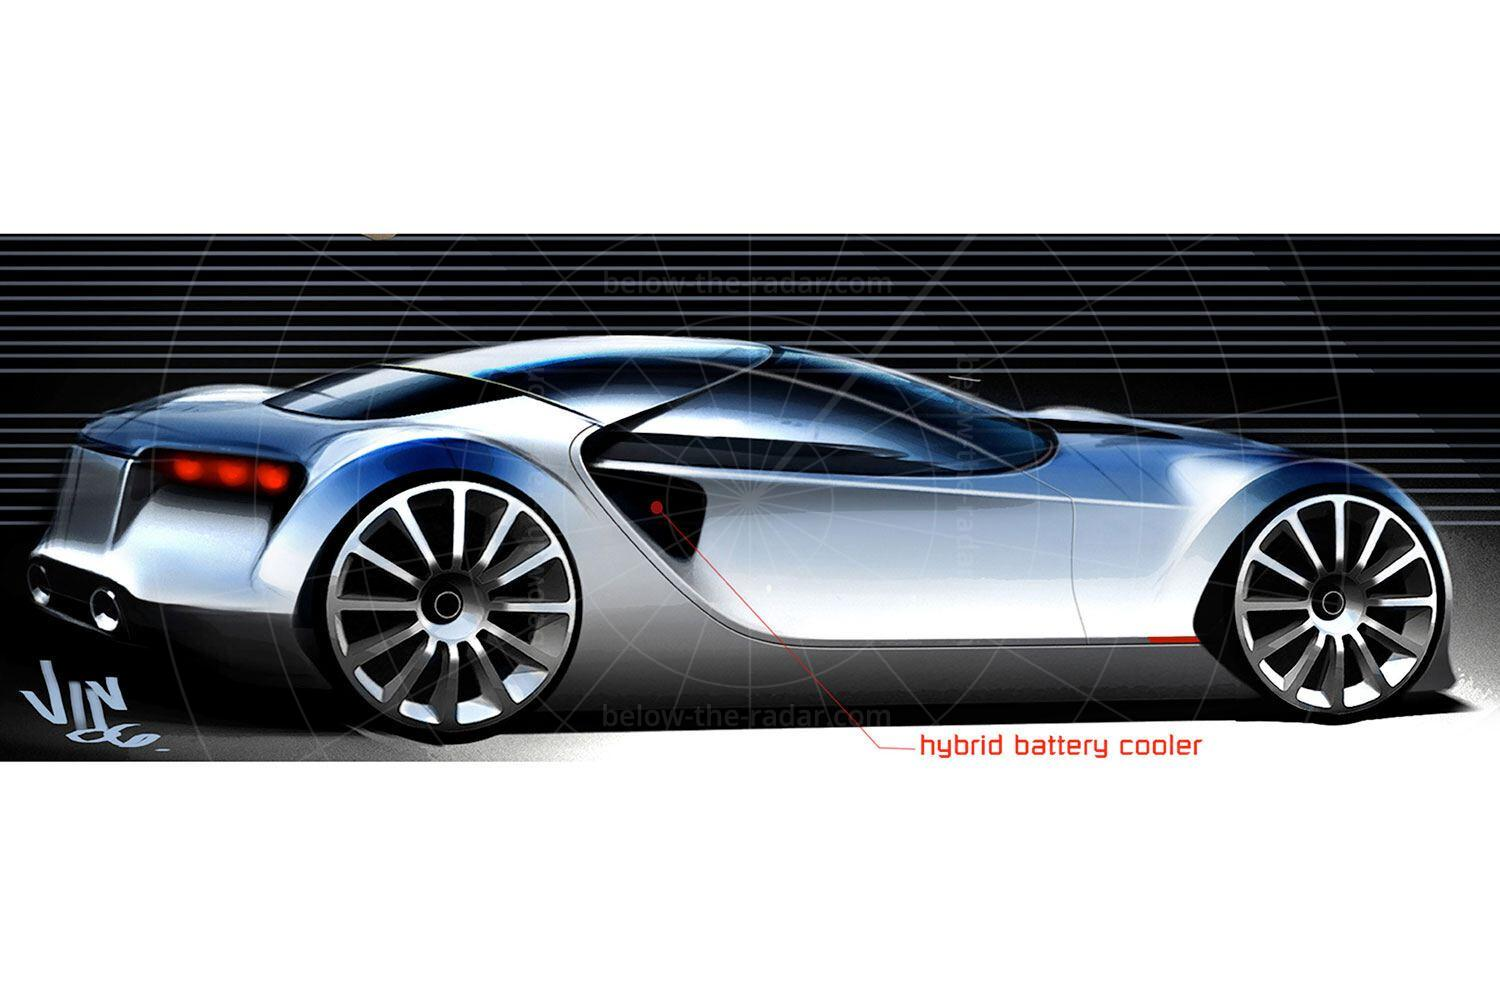 Toyota FT-HS concept design sketch Pic: Toyota | Toyota FT-HS concept design sketch